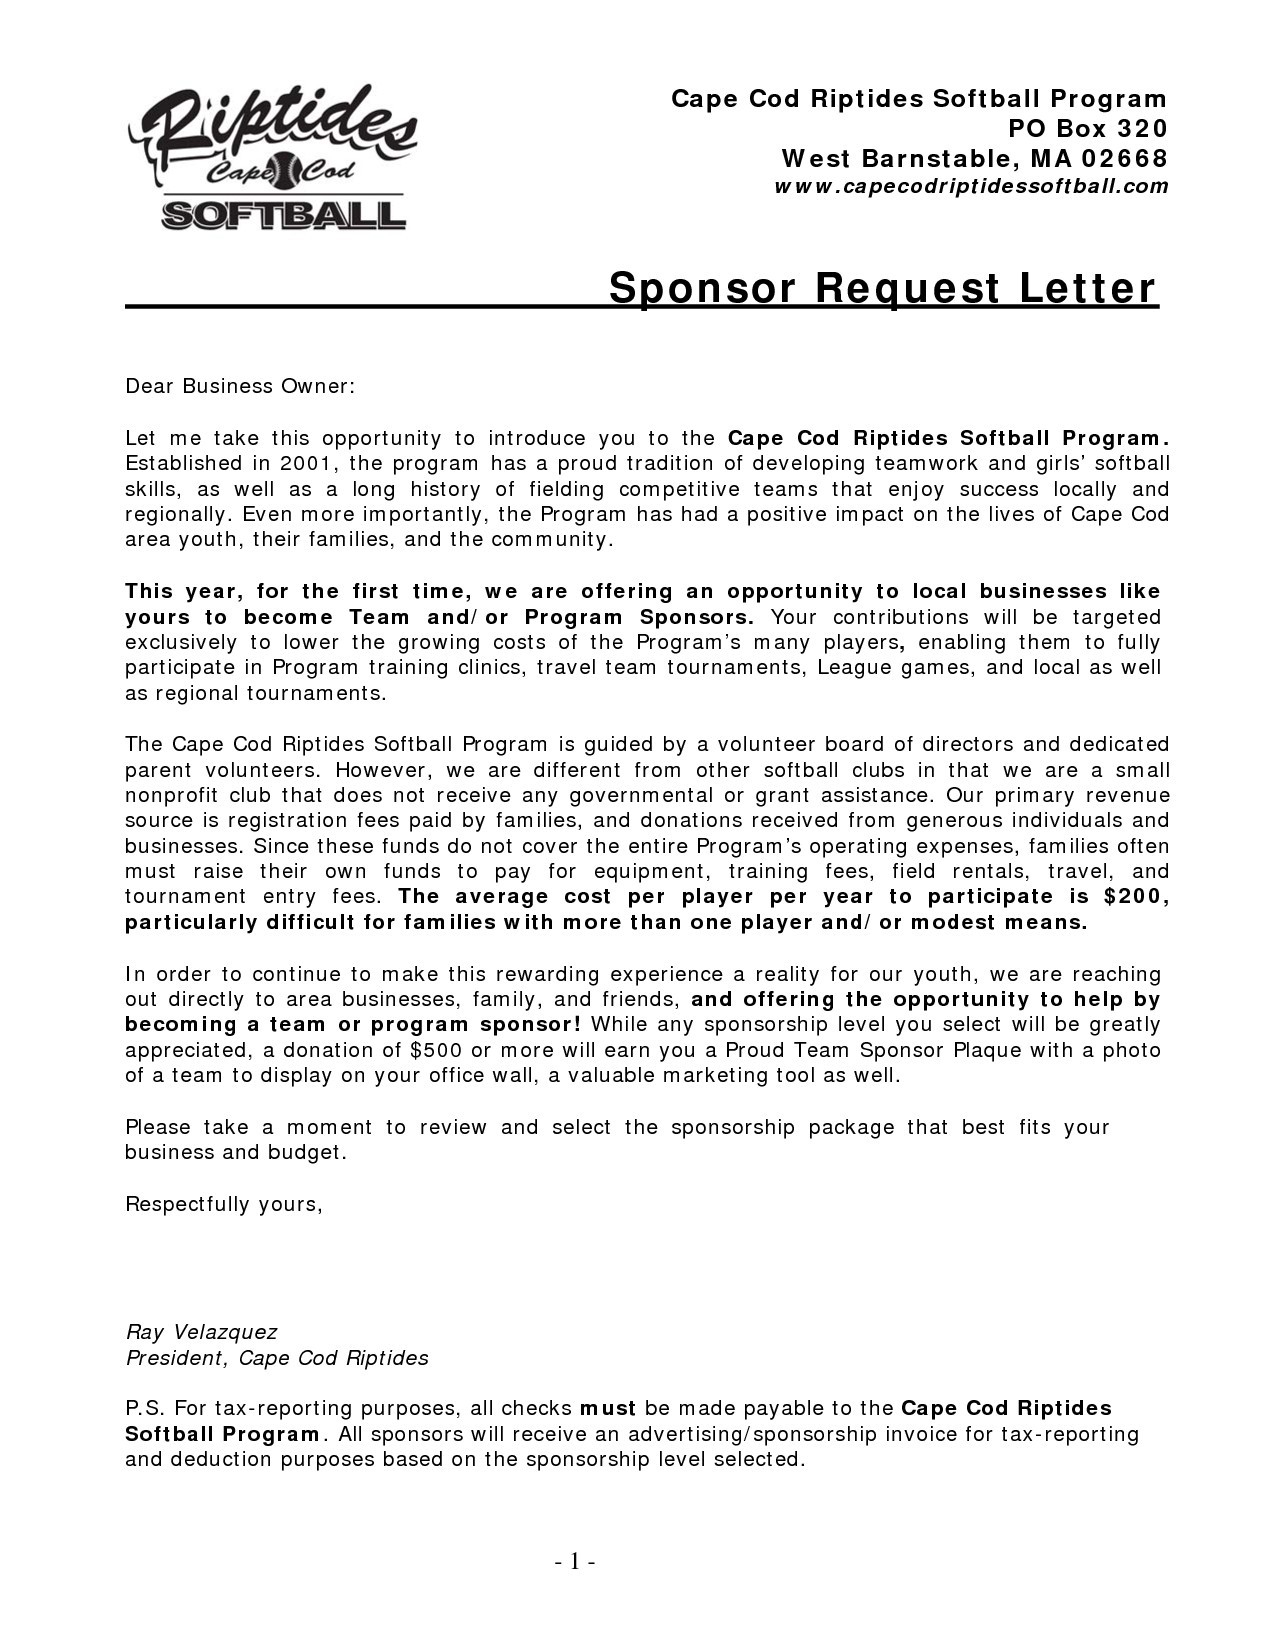 Sponsorship Letter Template for Donations - Sponsorship Request Letter Pdf Save Sample Registration Letter